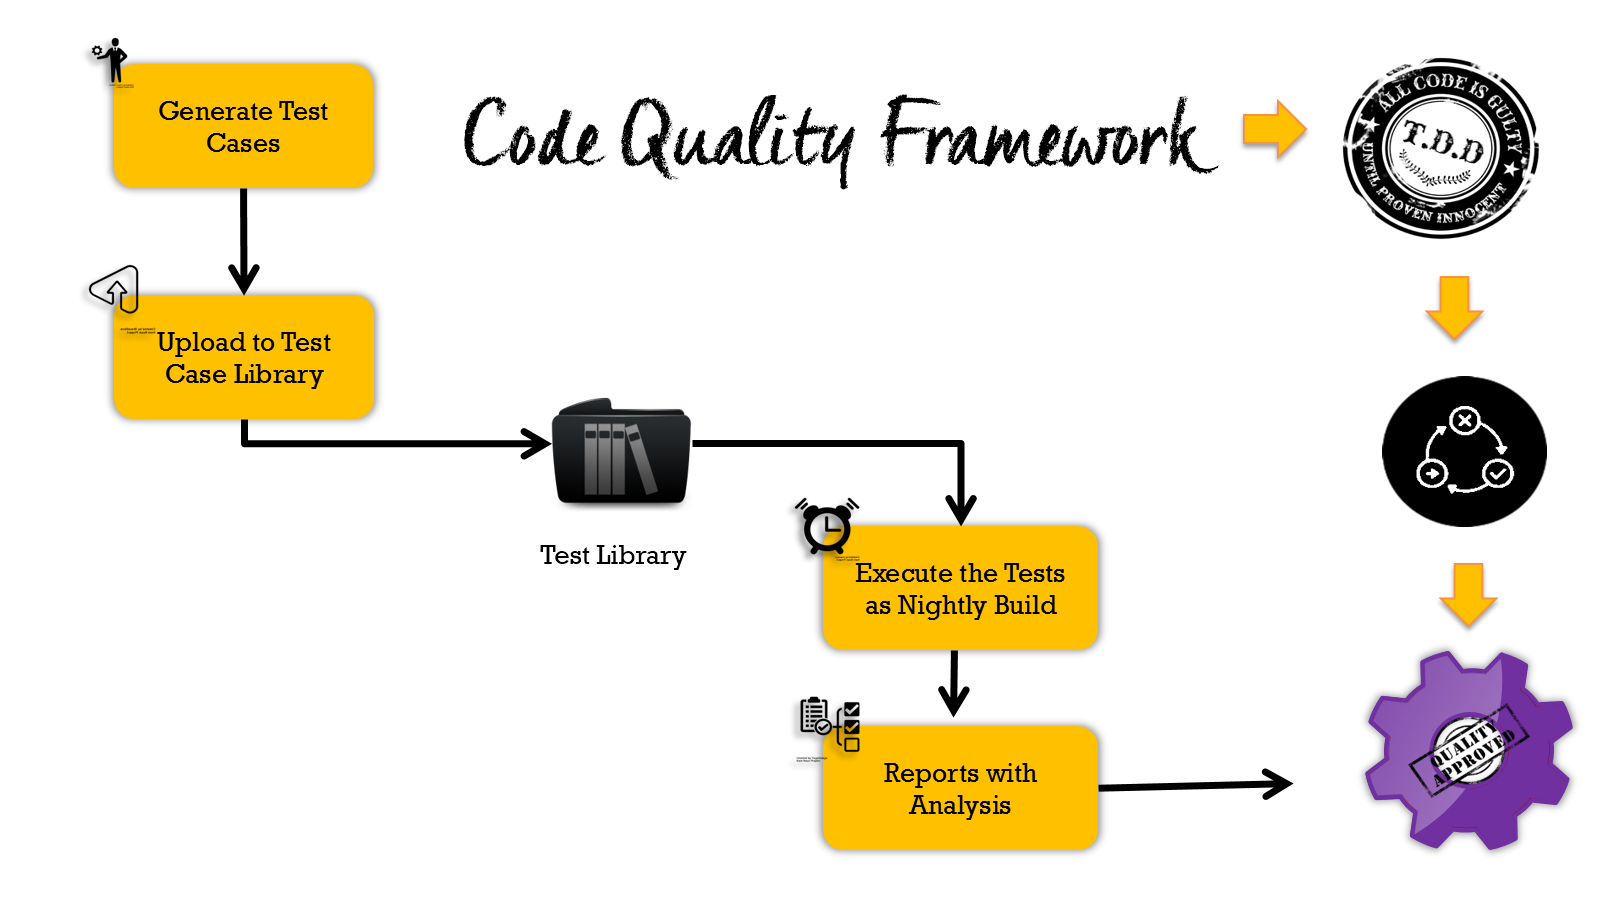 Oracle SOA Code Quality Framework.